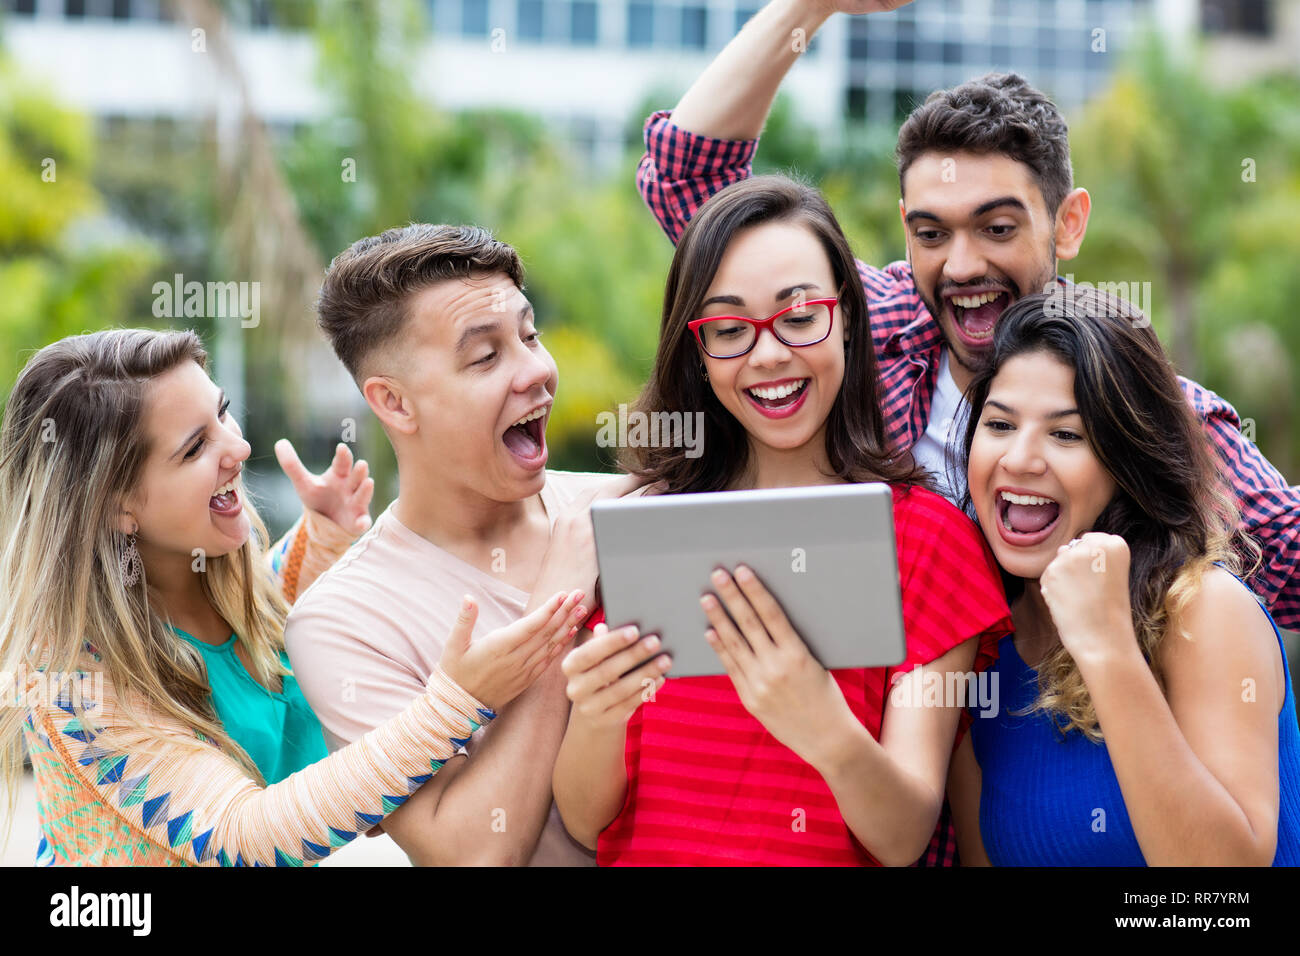 Laughing nerdy french female student with tablet computer and group of cheering international students outdoors in summer in the city - Stock Image